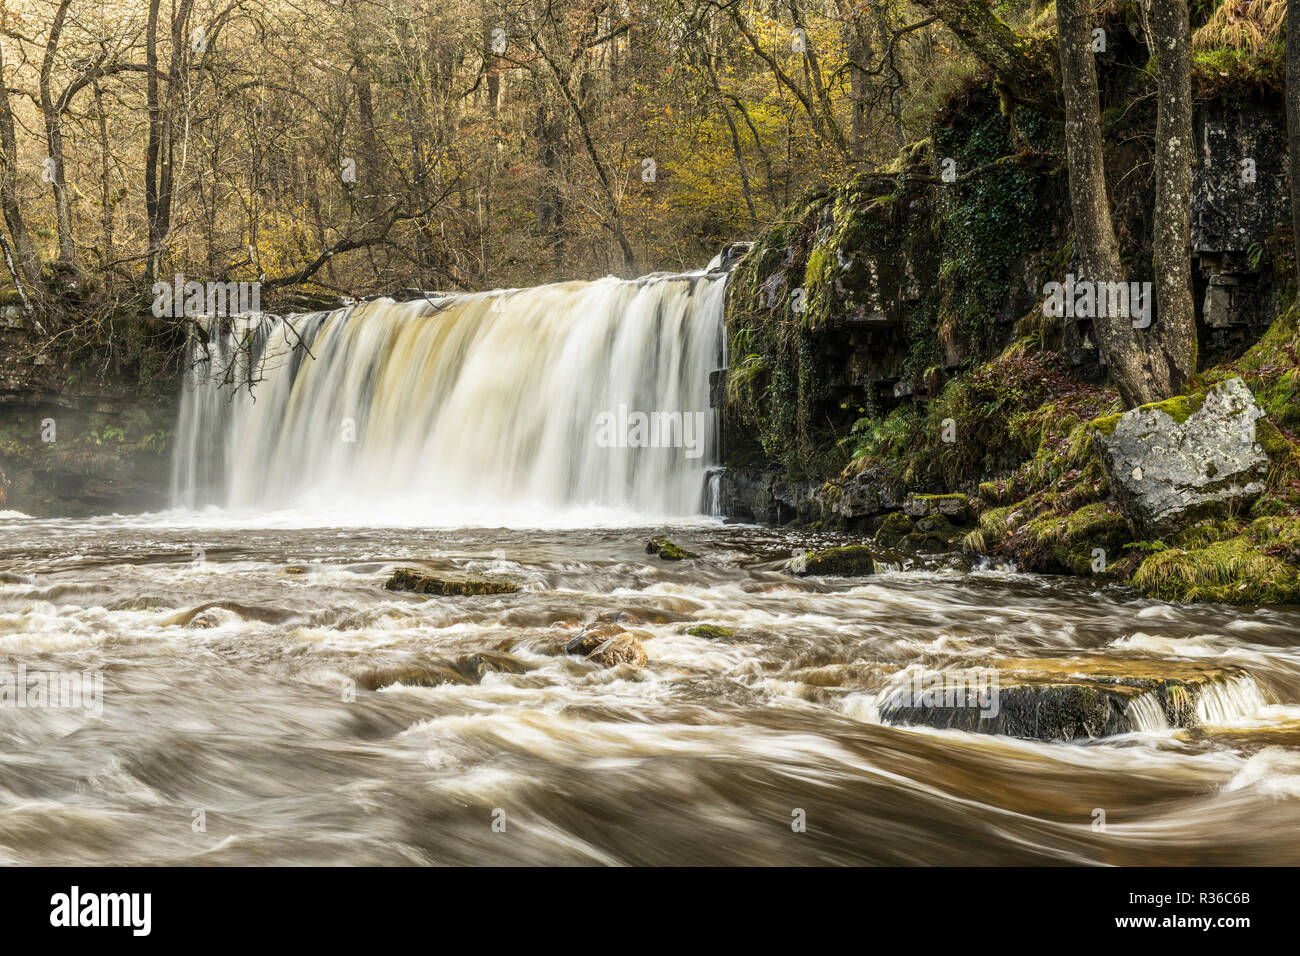 The Upper Ddwli Falls on the River Neath in the Brecon Beacons National park - Stock Image